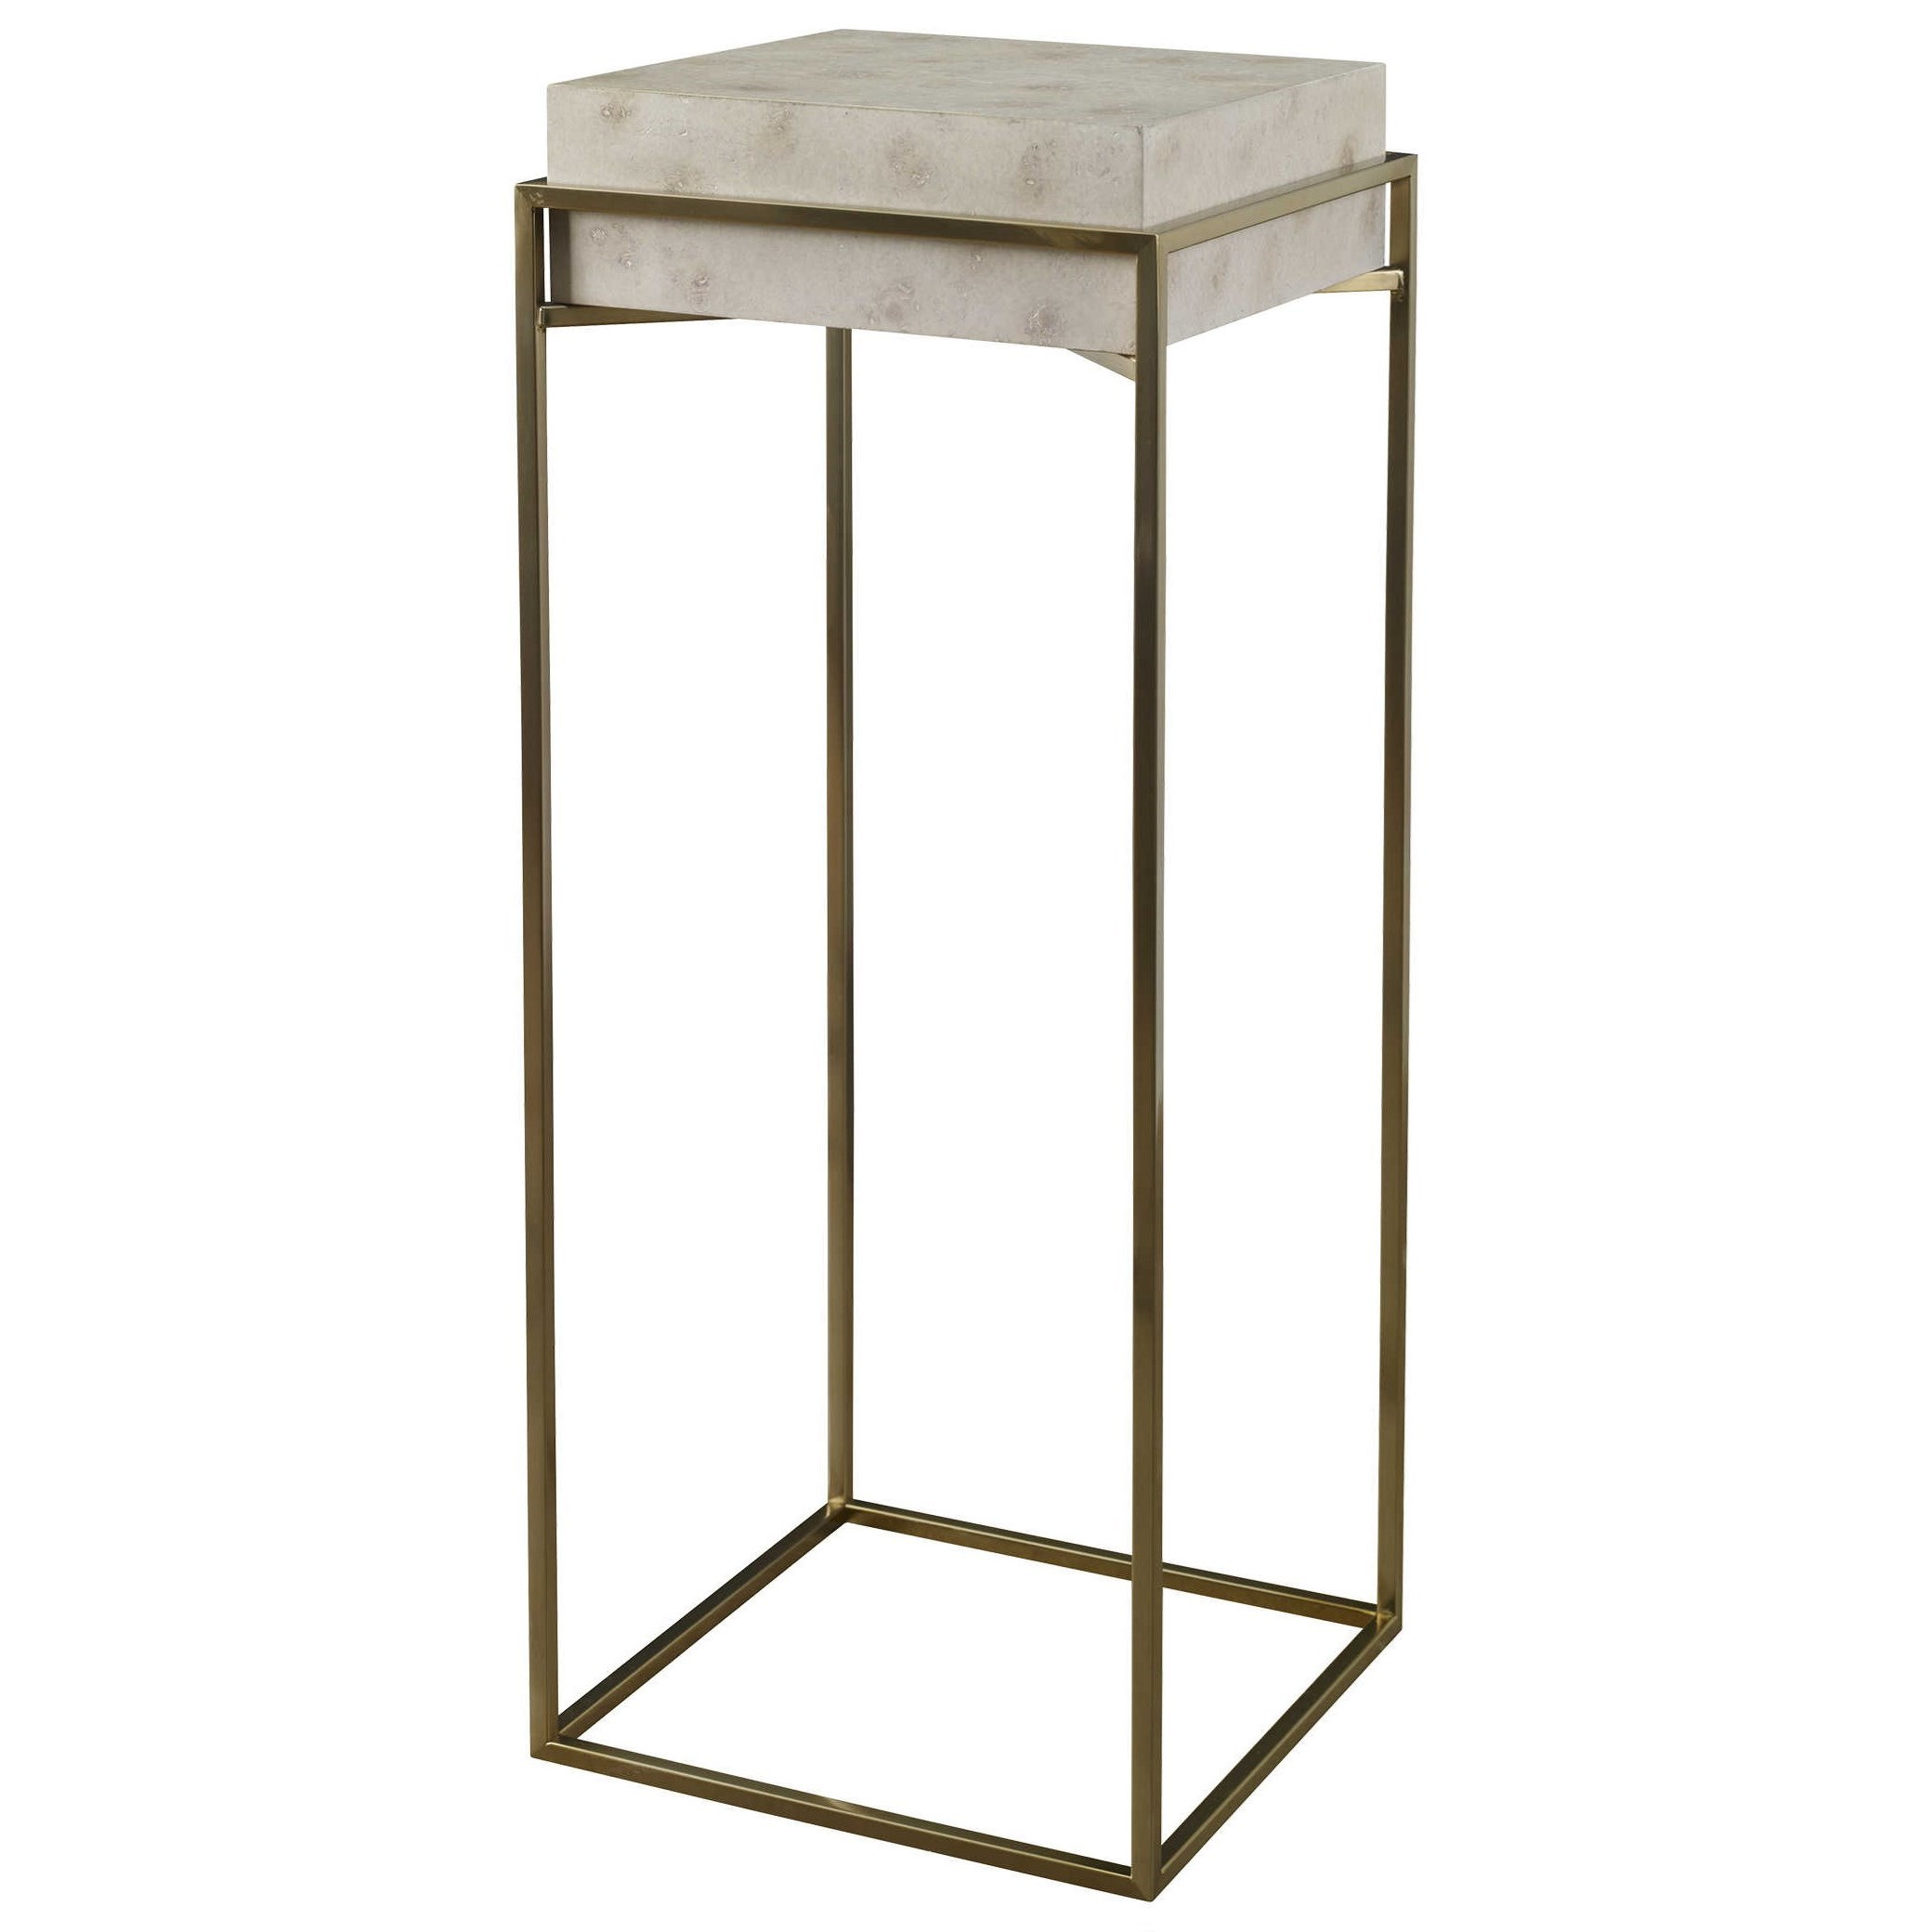 Accent Furniture - Occasional Tables Inda Modern Ivory Plant Stand by Uttermost at Mueller Furniture